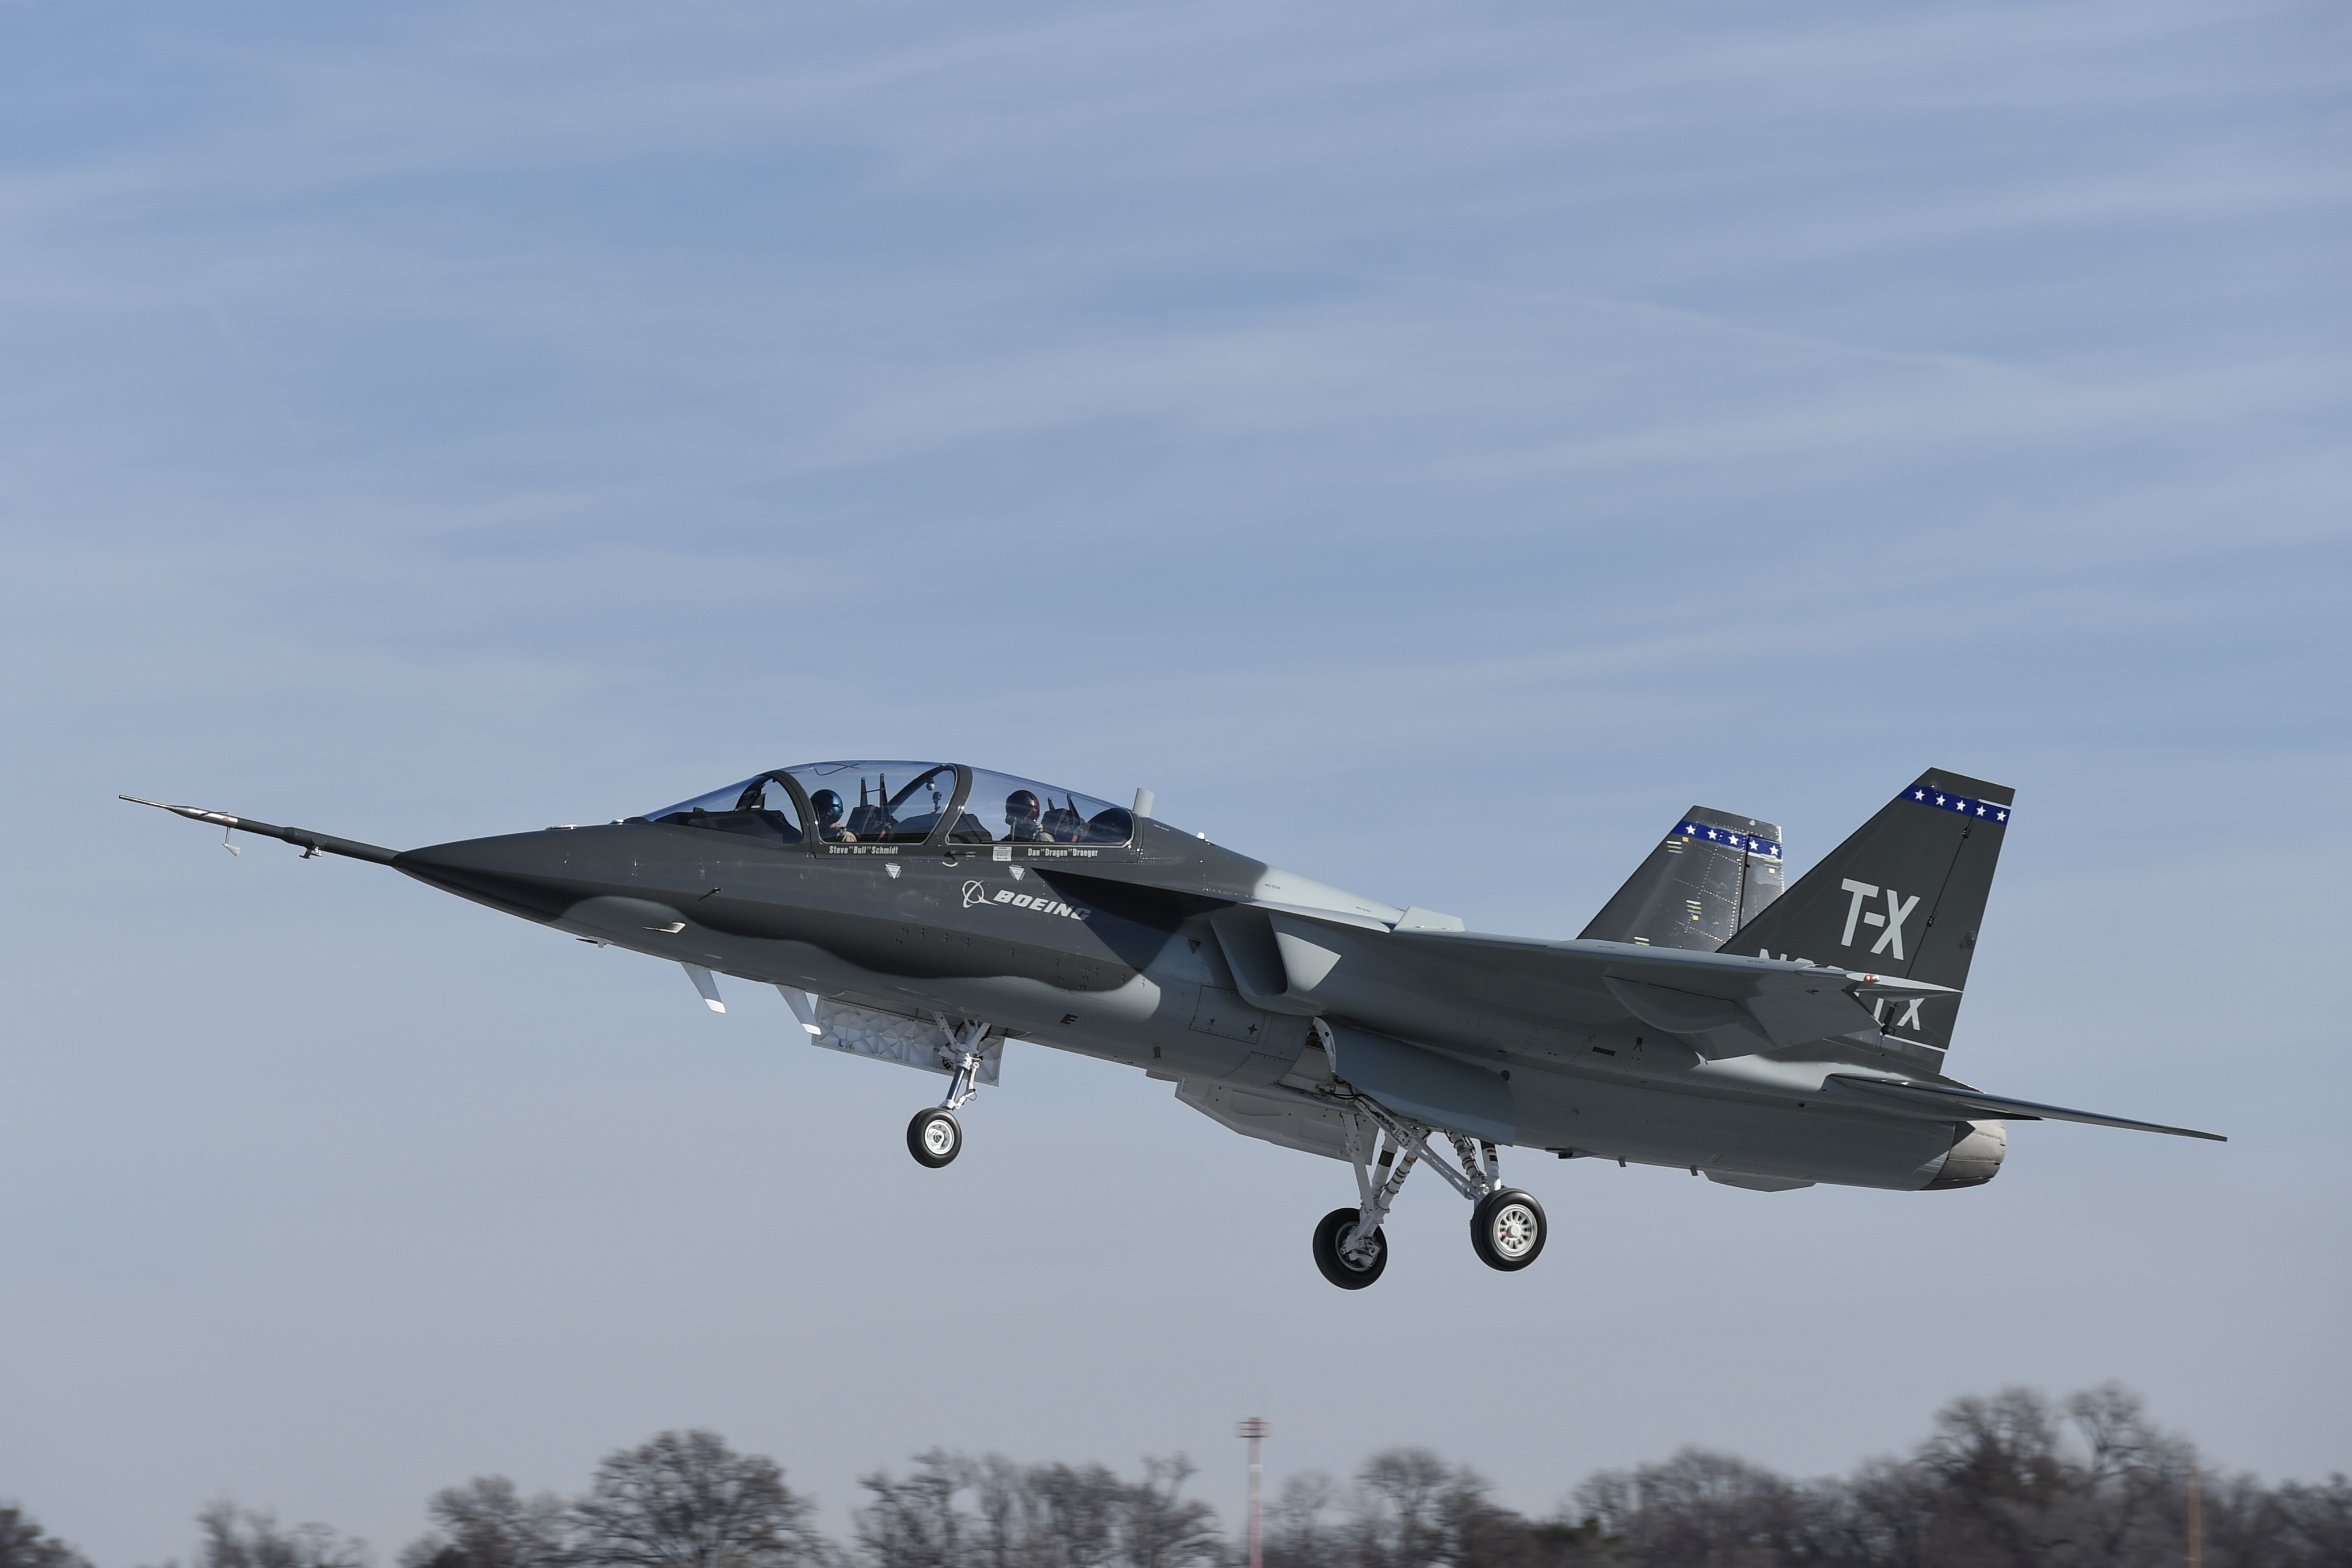 T X First Flight Takeoff 12 20 16 The Boeing Saab Team Conducted The First Flight Of Their T X Entrant From Boeing S St Fighter Aircraft Fighter Jets Boeing